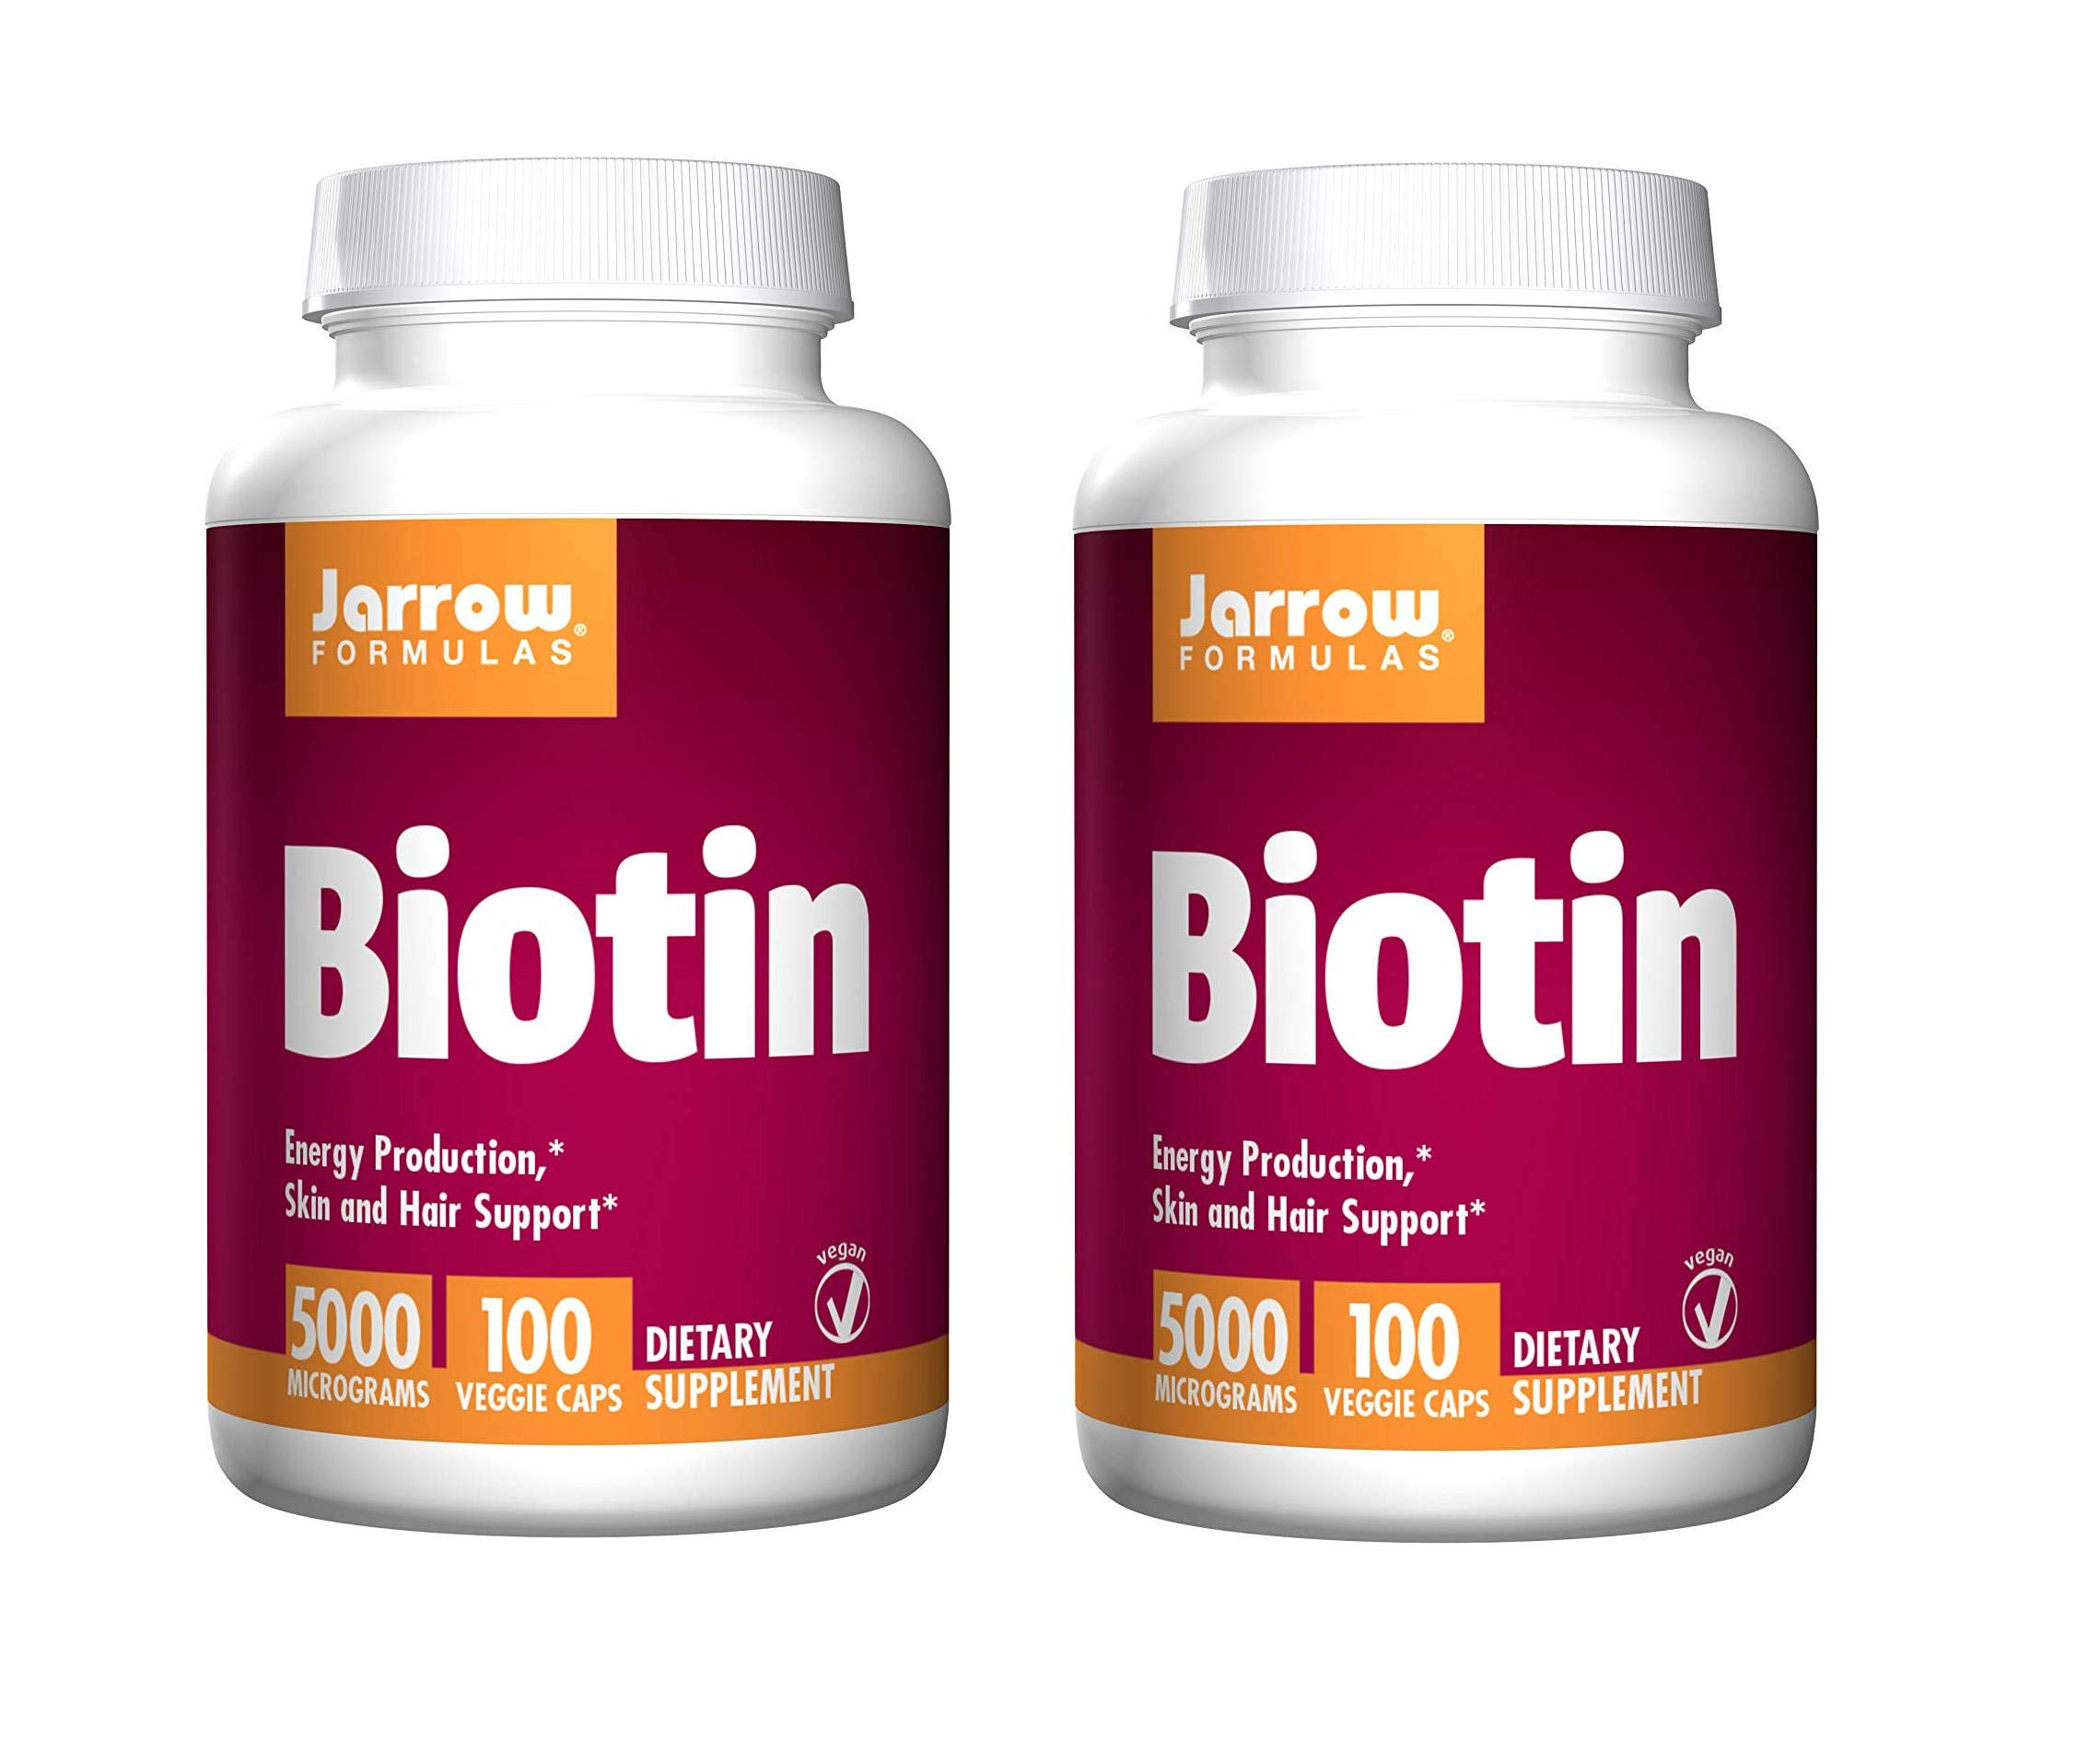 Jarrow Formulas Biotin for Energy Production, Skin and Hair Support 5000 Micrograms (100 Veggie Caps) Pack of 2